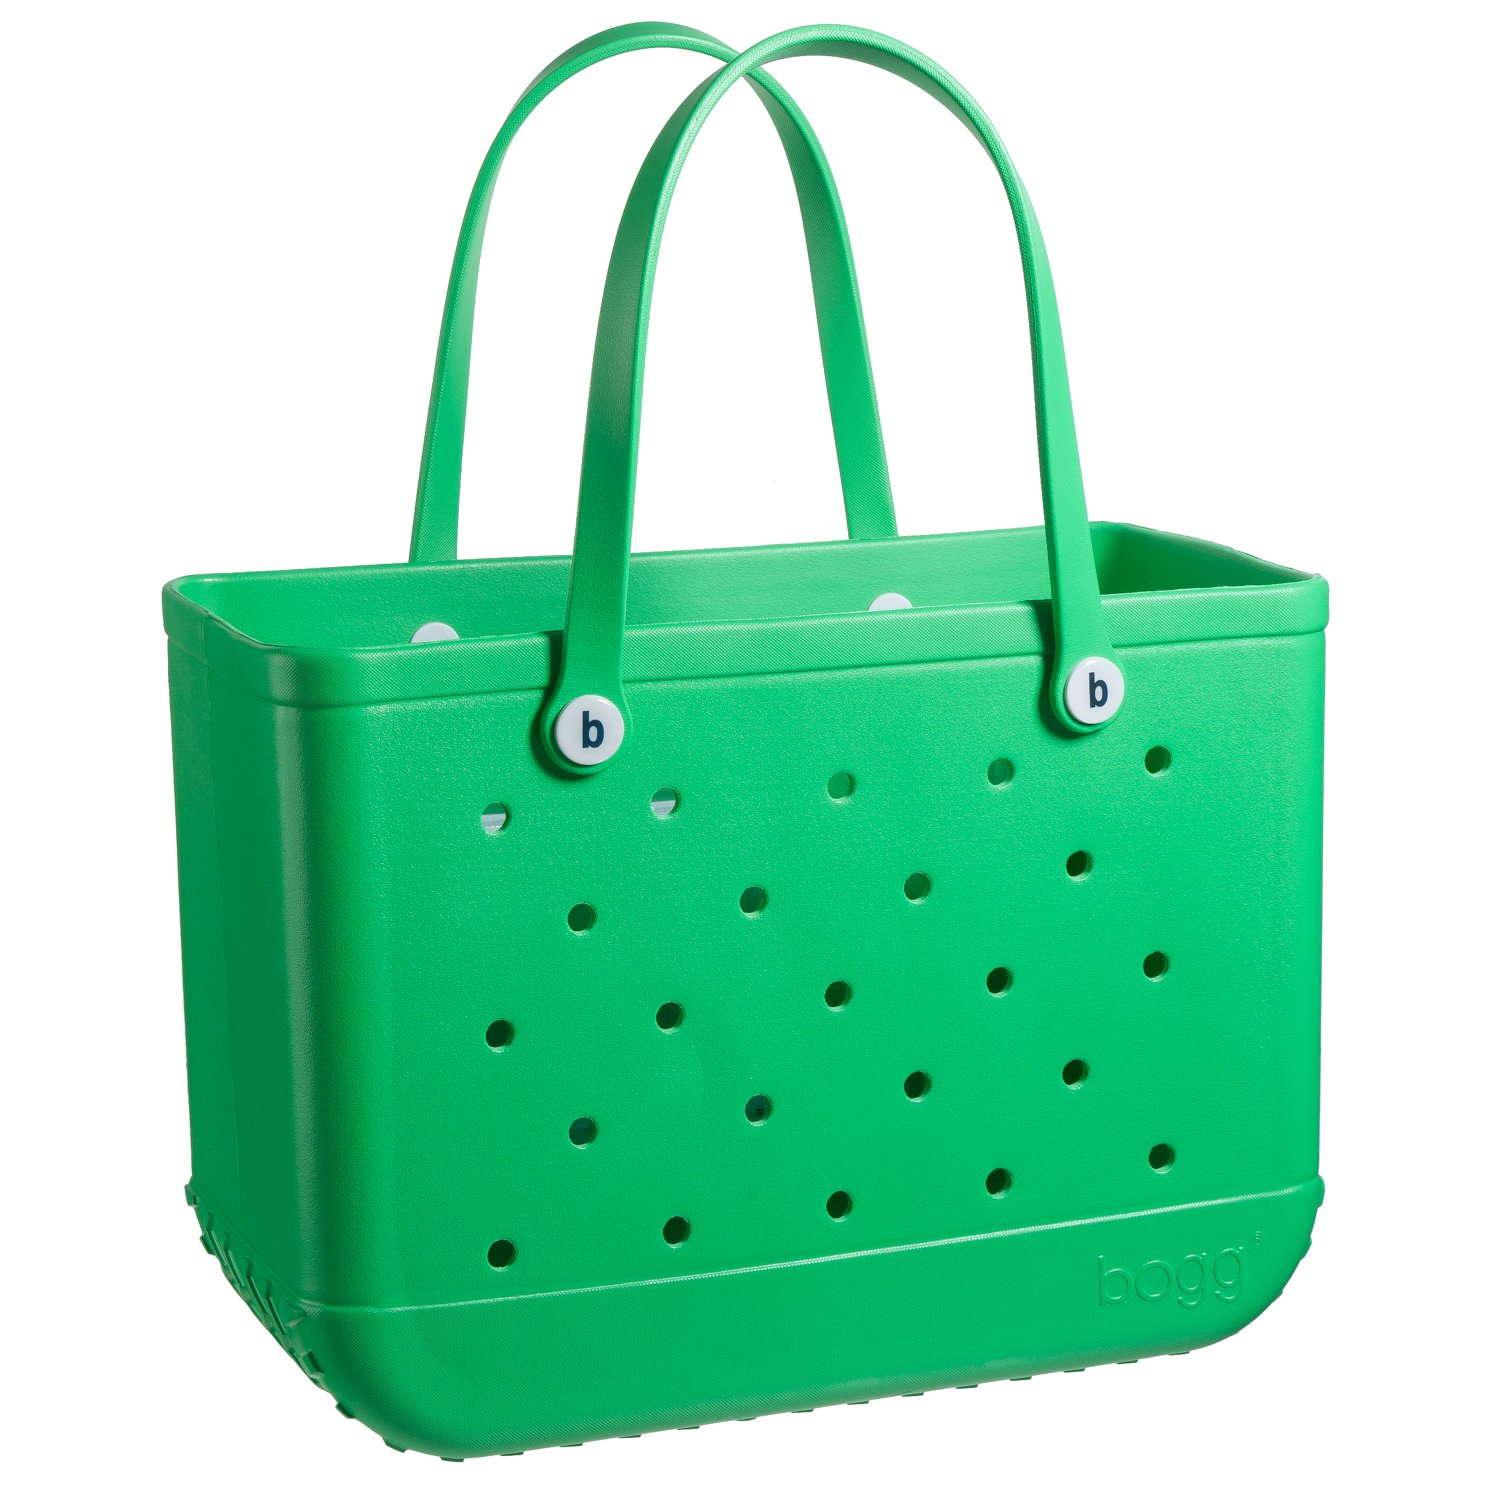 BOGG BAG X Large Waterproof Washable Tip Proof Durable Open Tote Bag for the Beach Boat Pool Sports 19x15x9.5 (X Large, GREEN with envy bogg)